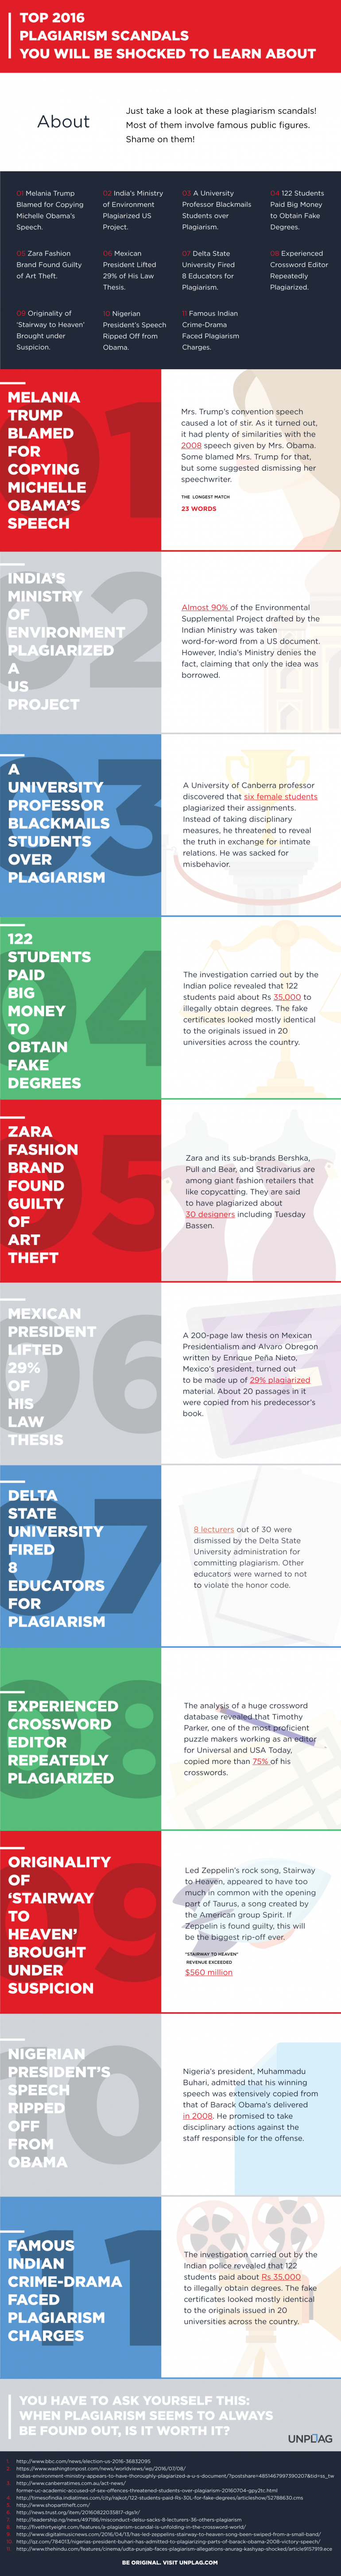 You will be shocked to learn about these plagiarism scandals (many public figures are involved!)